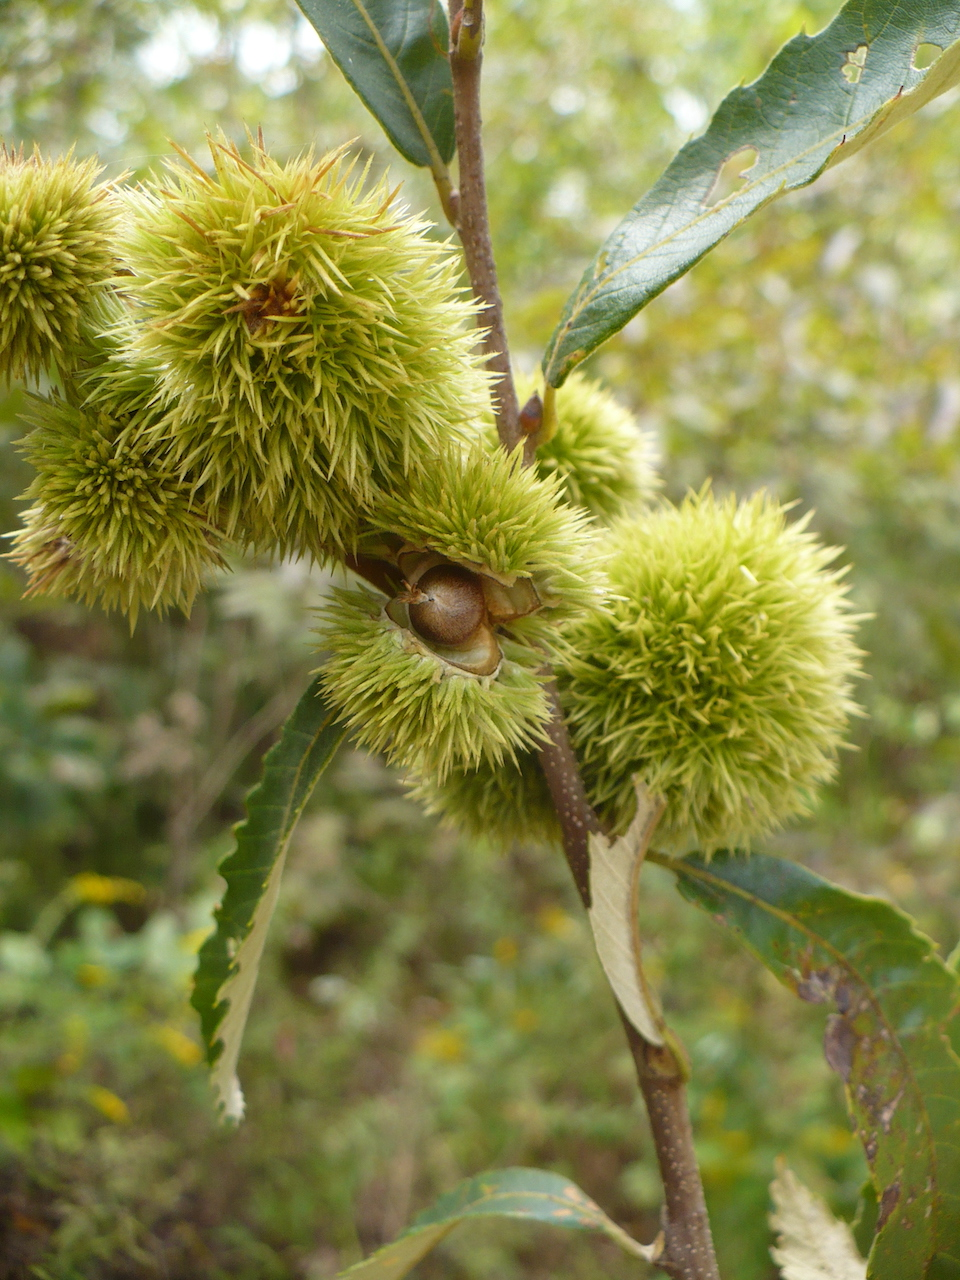 The Scientific Name is Castanea pumila. You will likely hear them called Common Chinquapin, Allegheny Chinquapin, Chinkapin, Dwarf Chinquapin. This picture shows the One seed per bur; 10 ft shrub. of Castanea pumila